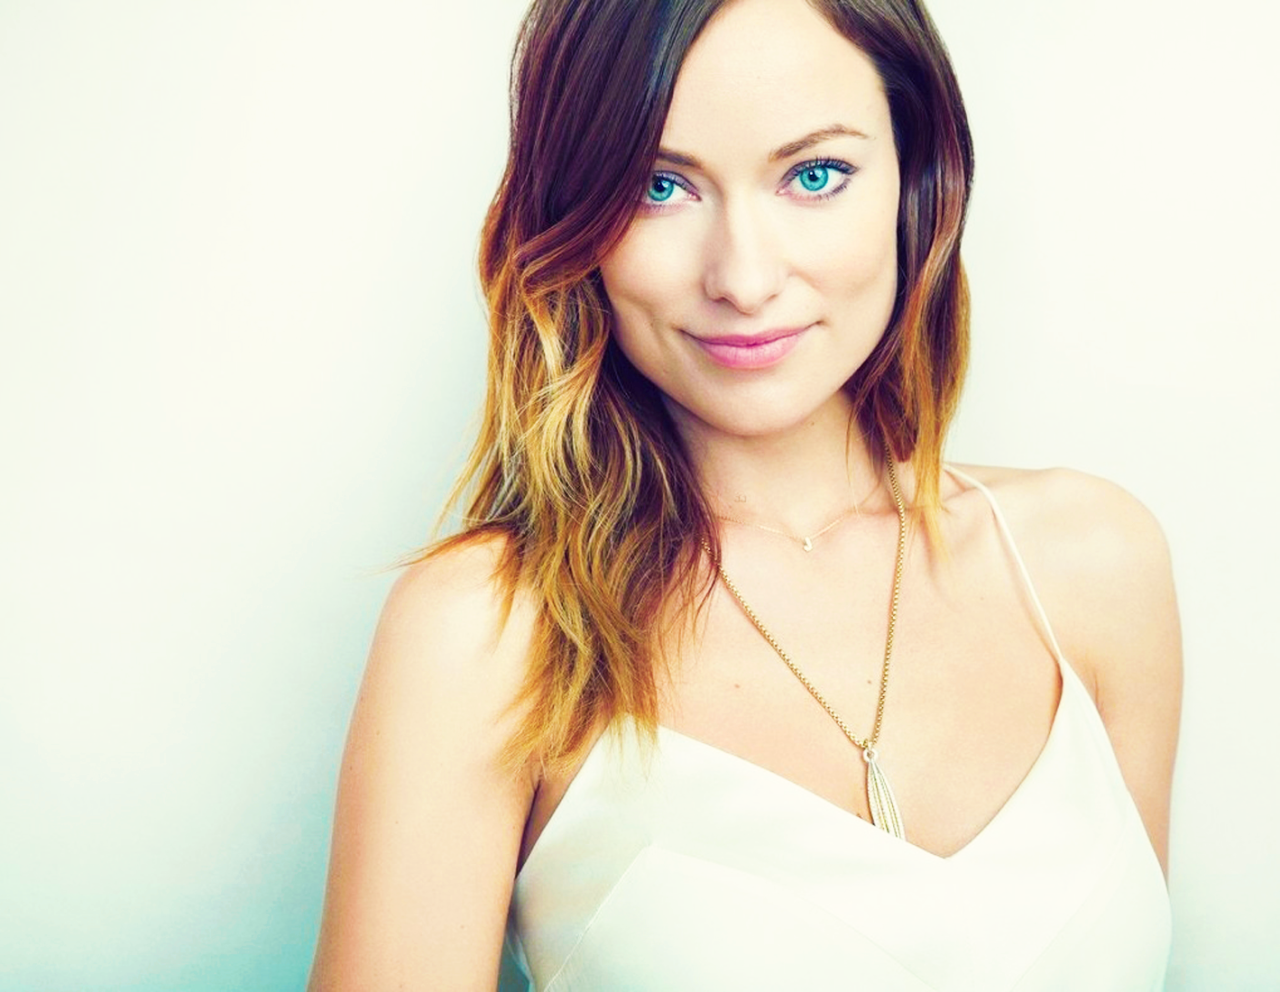 Alex Kelly and Remy Hadley (Olivia Wilde) – The OC and House